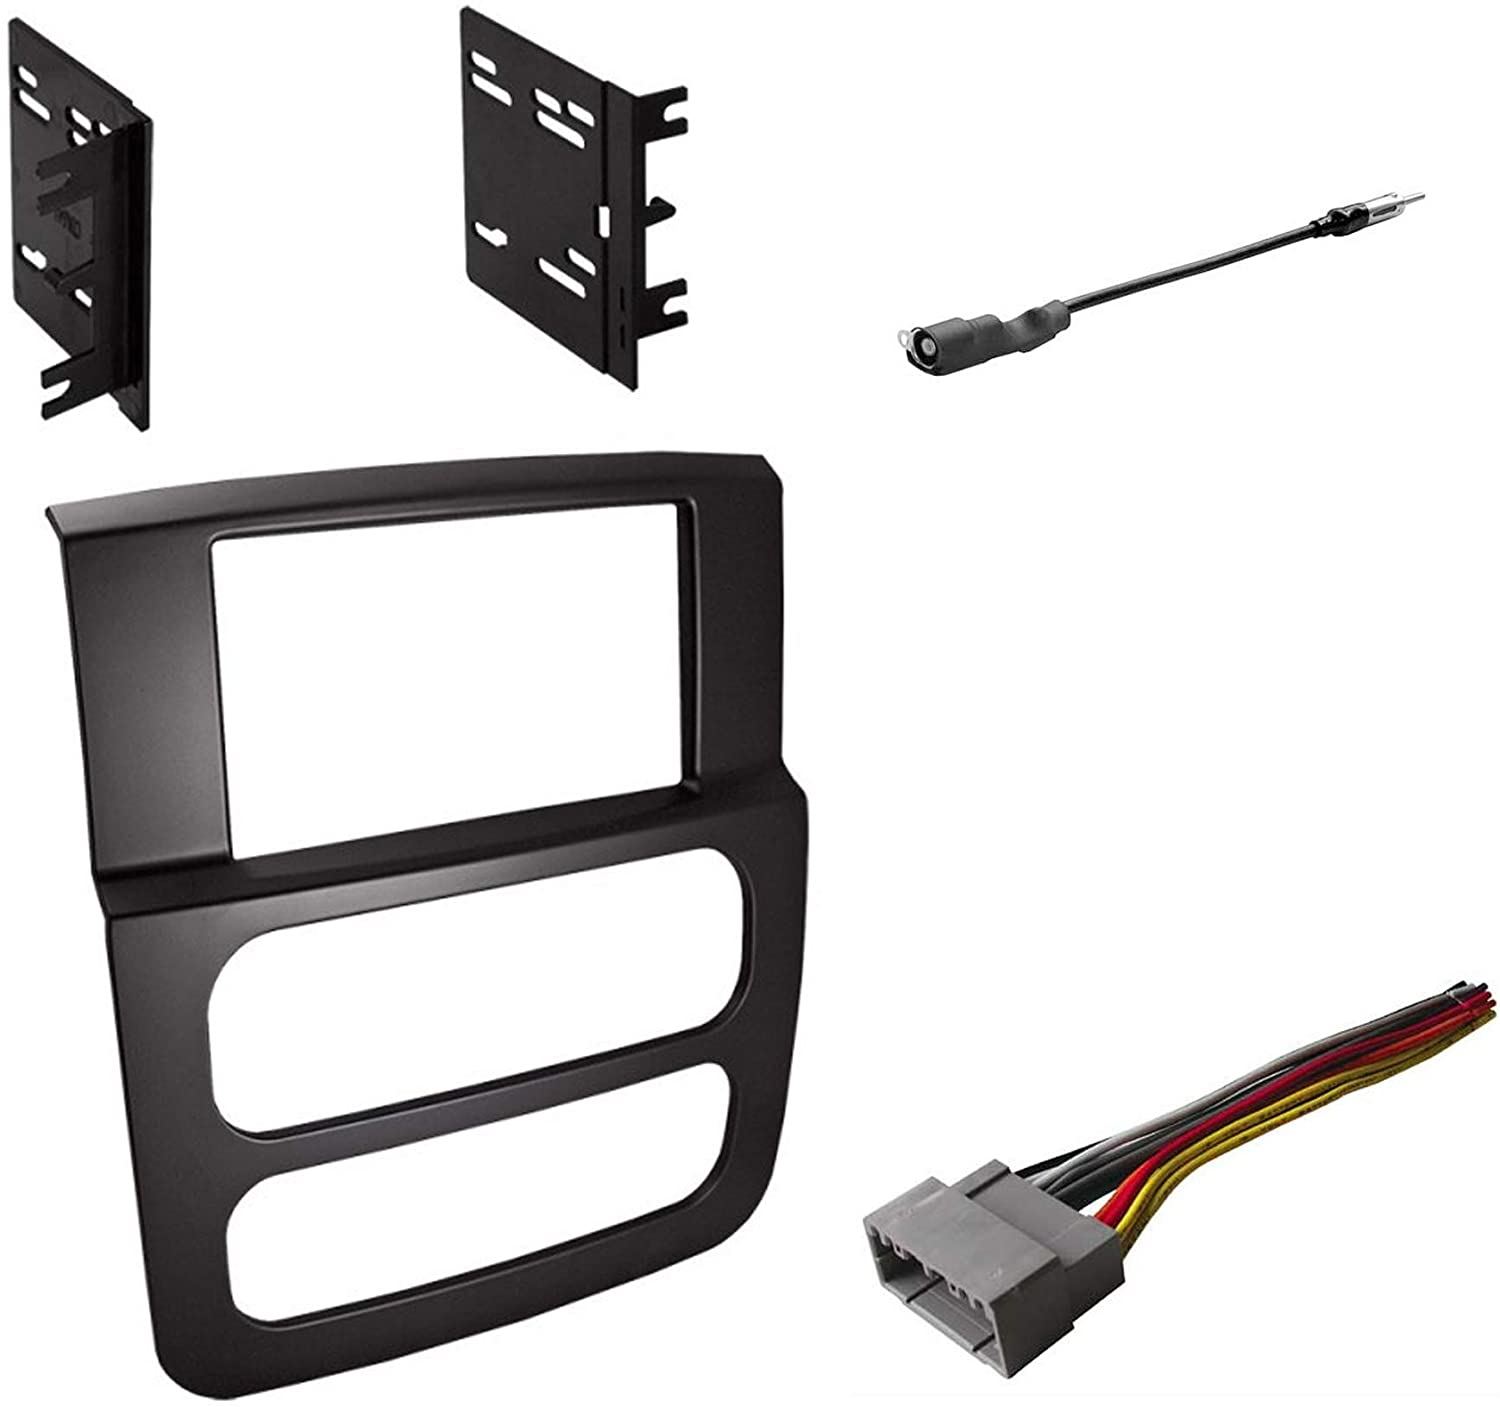 2005 Dodge Ram 1500 Radio Wiring Harness from images-na.ssl-images-amazon.com